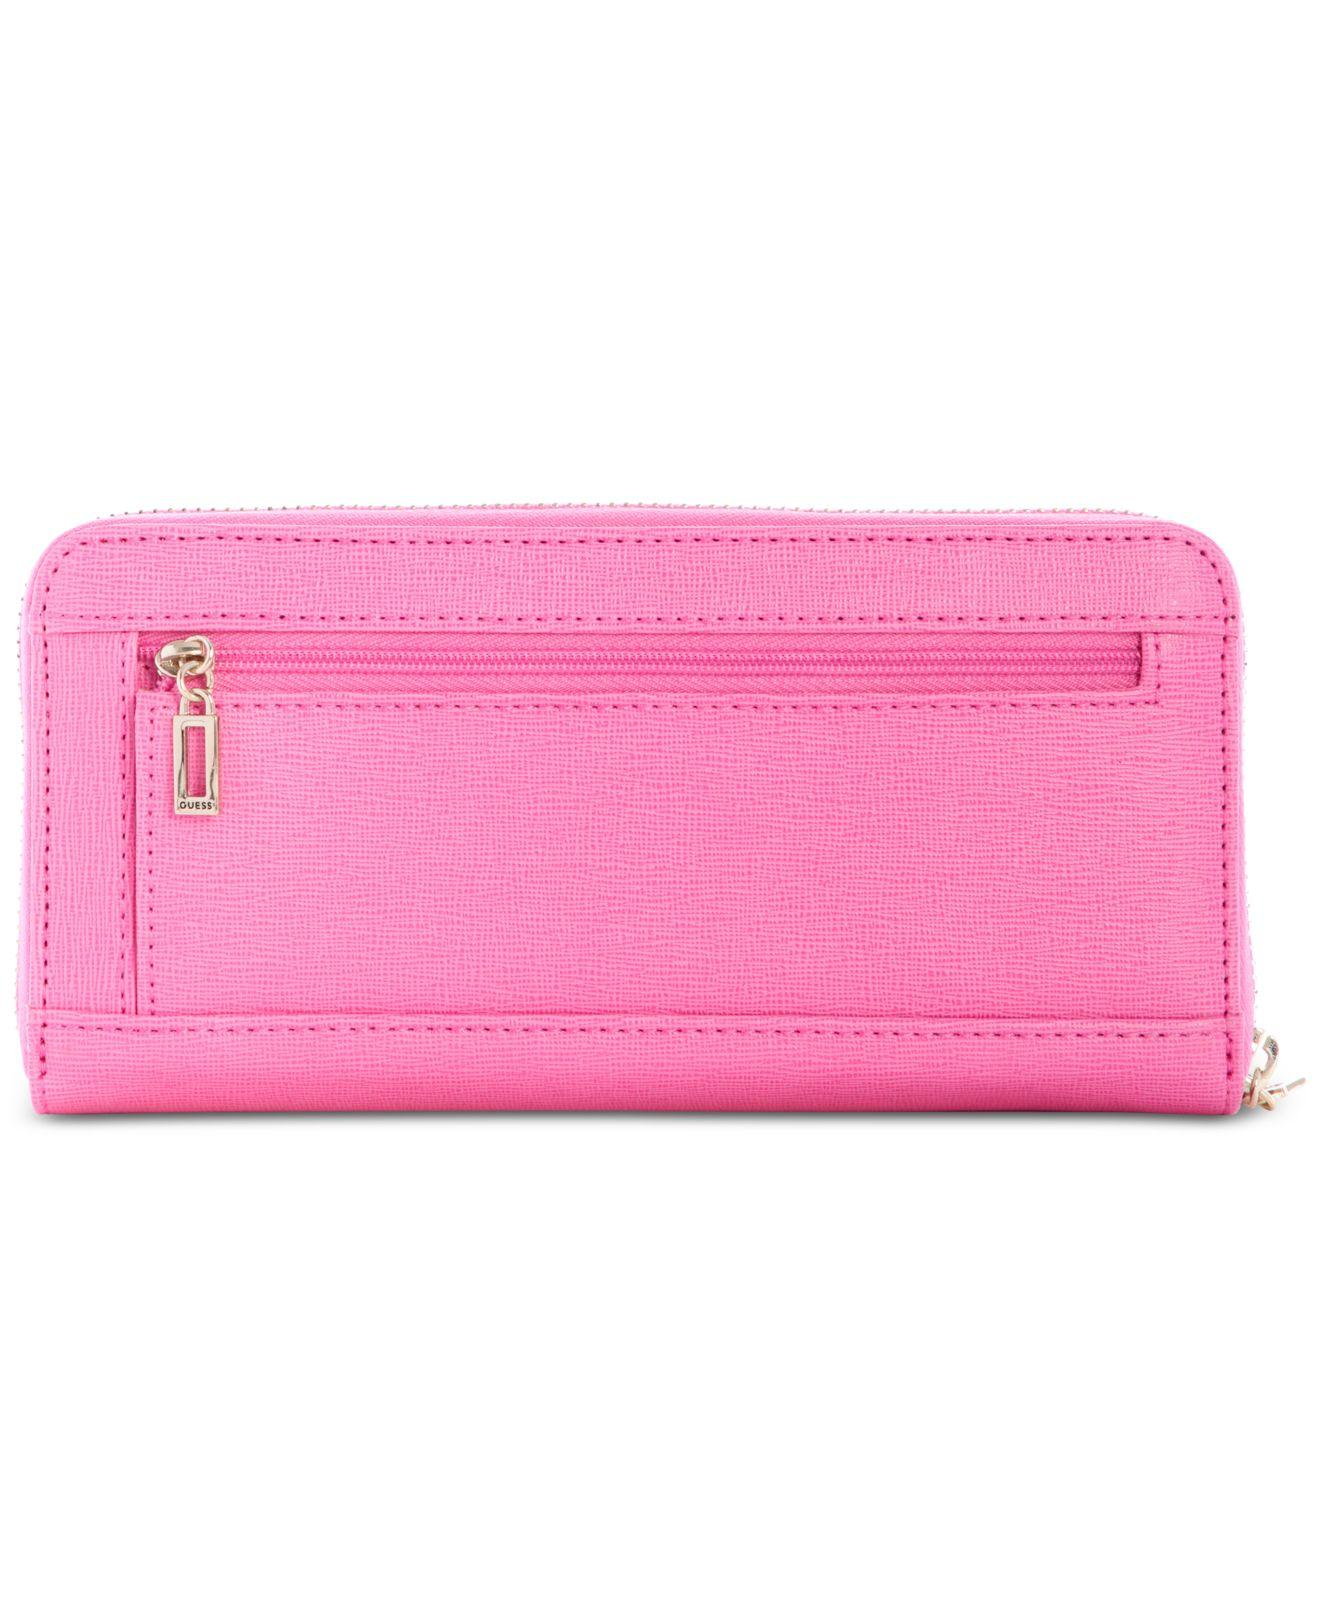 98957e7030 Lyst - Guess Kamryn Large Zip-around Wallet in Pink